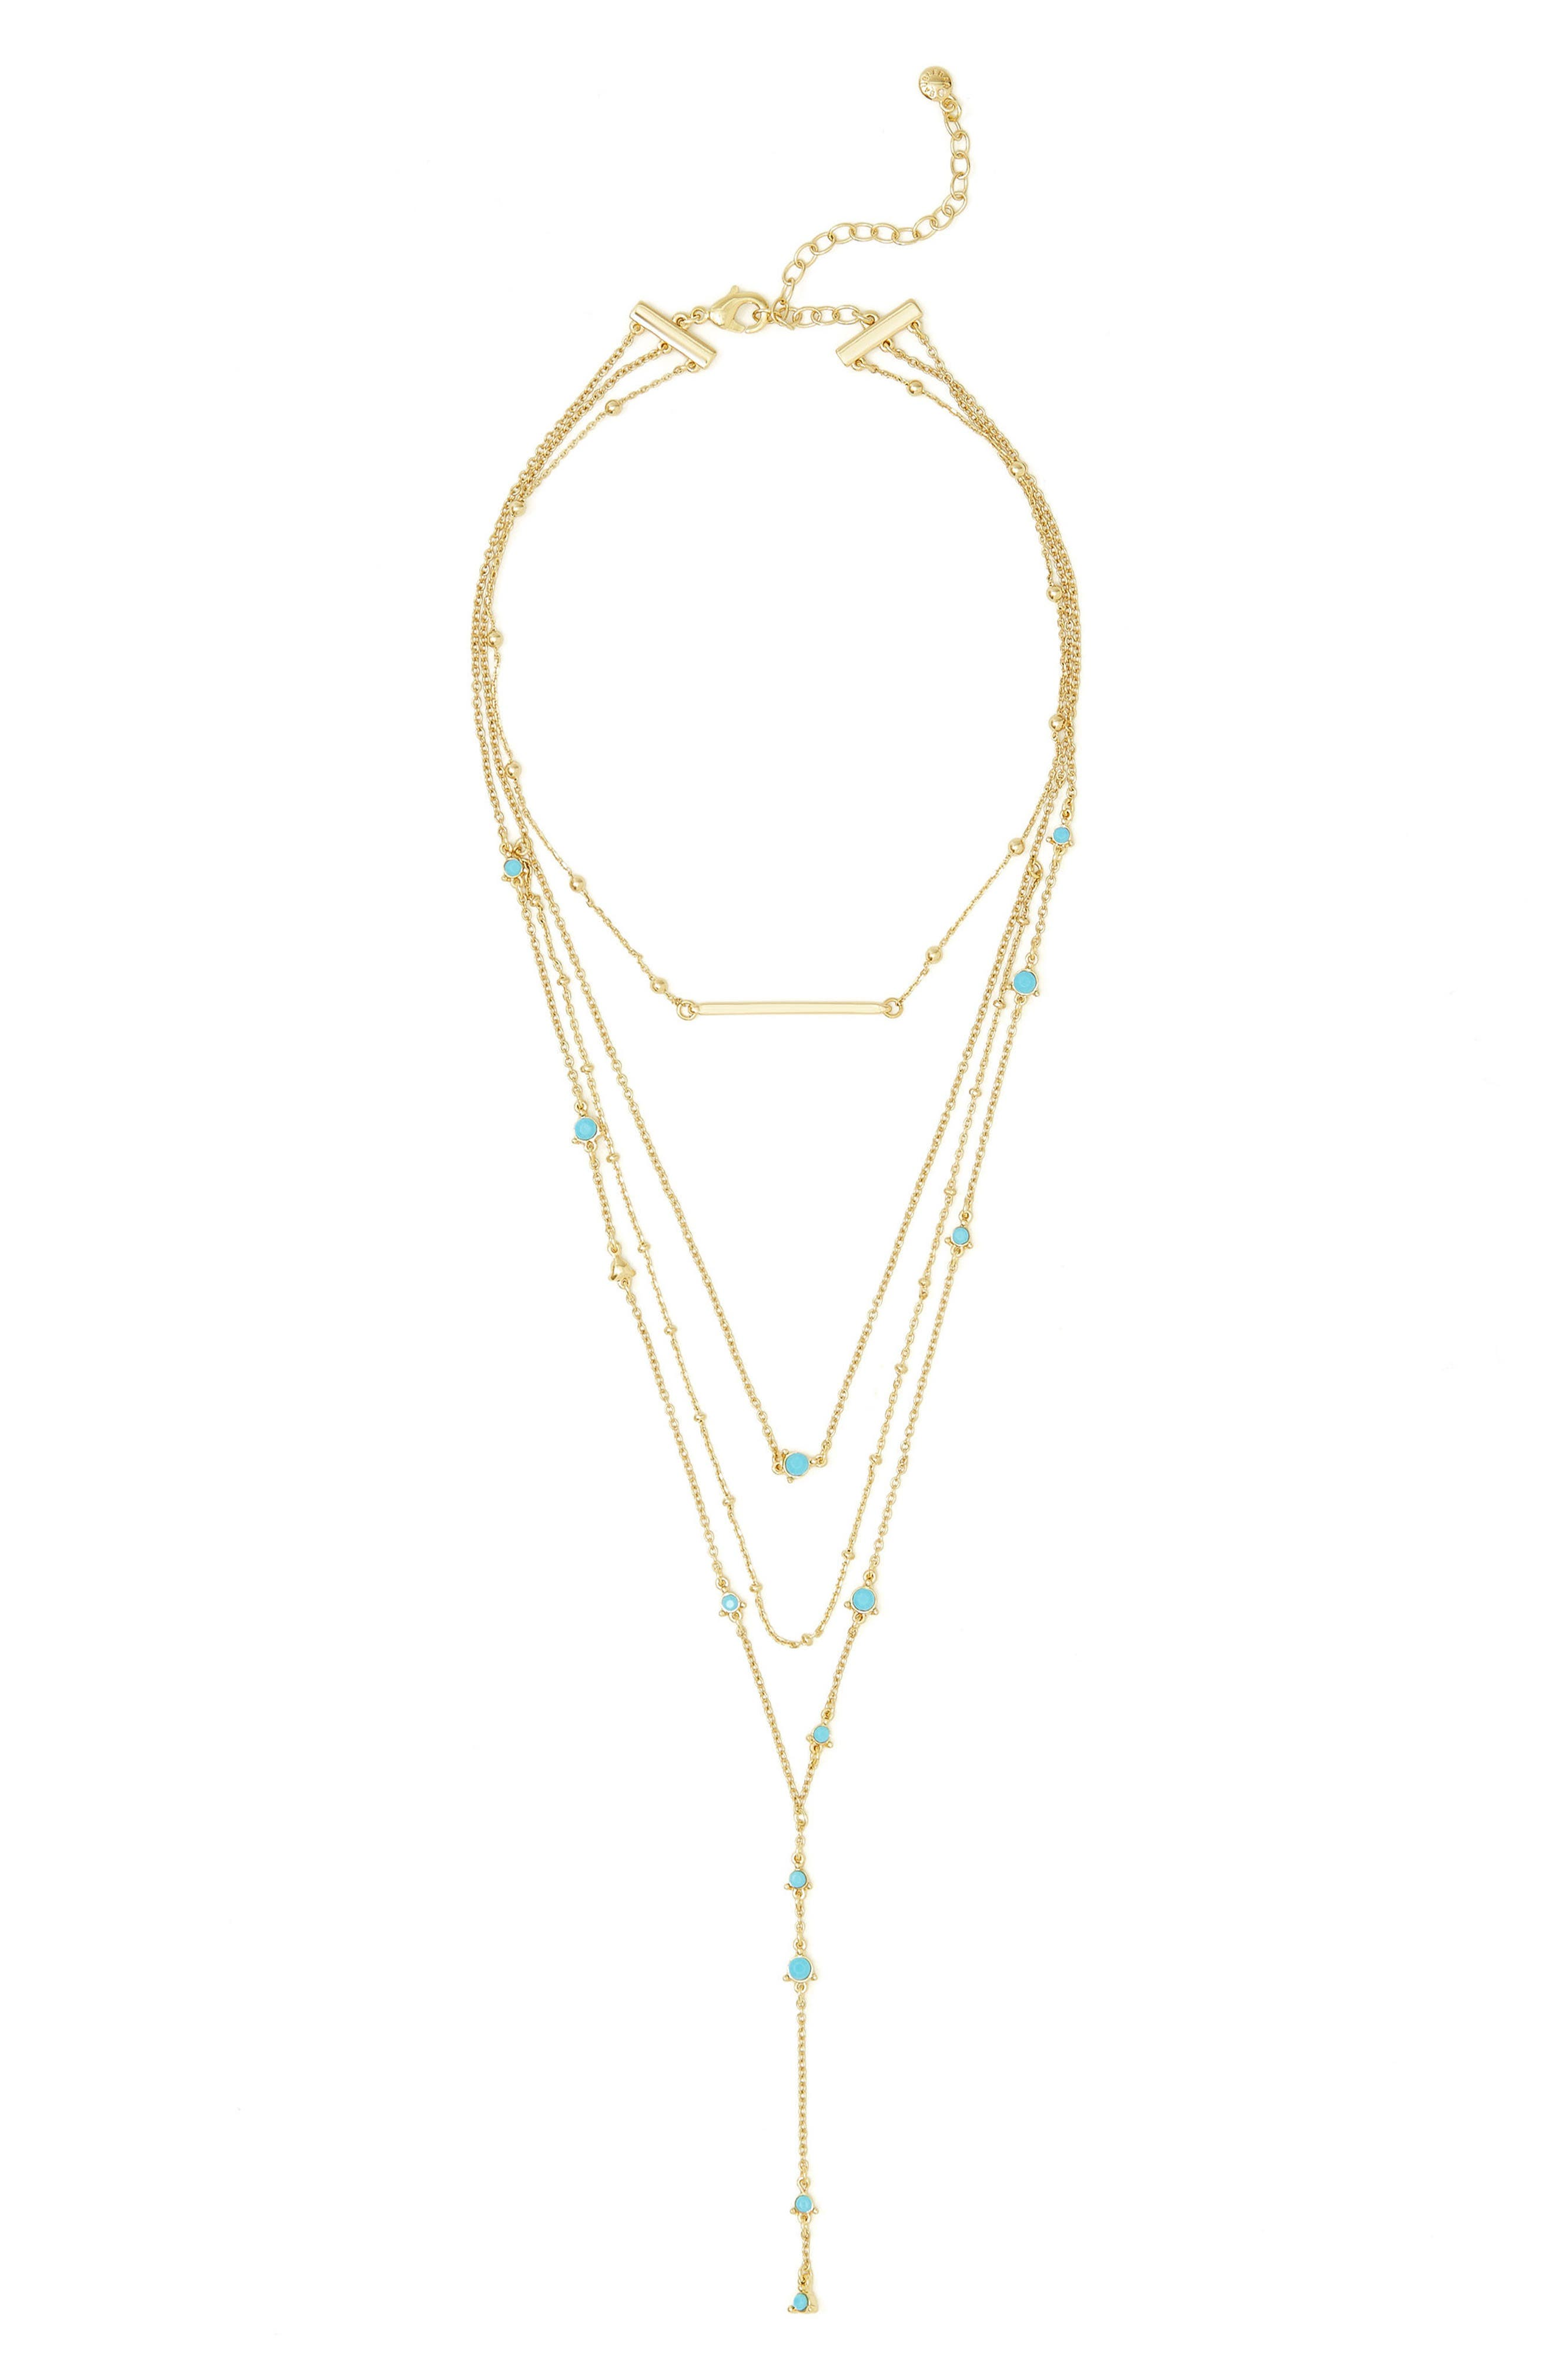 Main Image - BaubleBar Harlow Layered Lariat Necklace